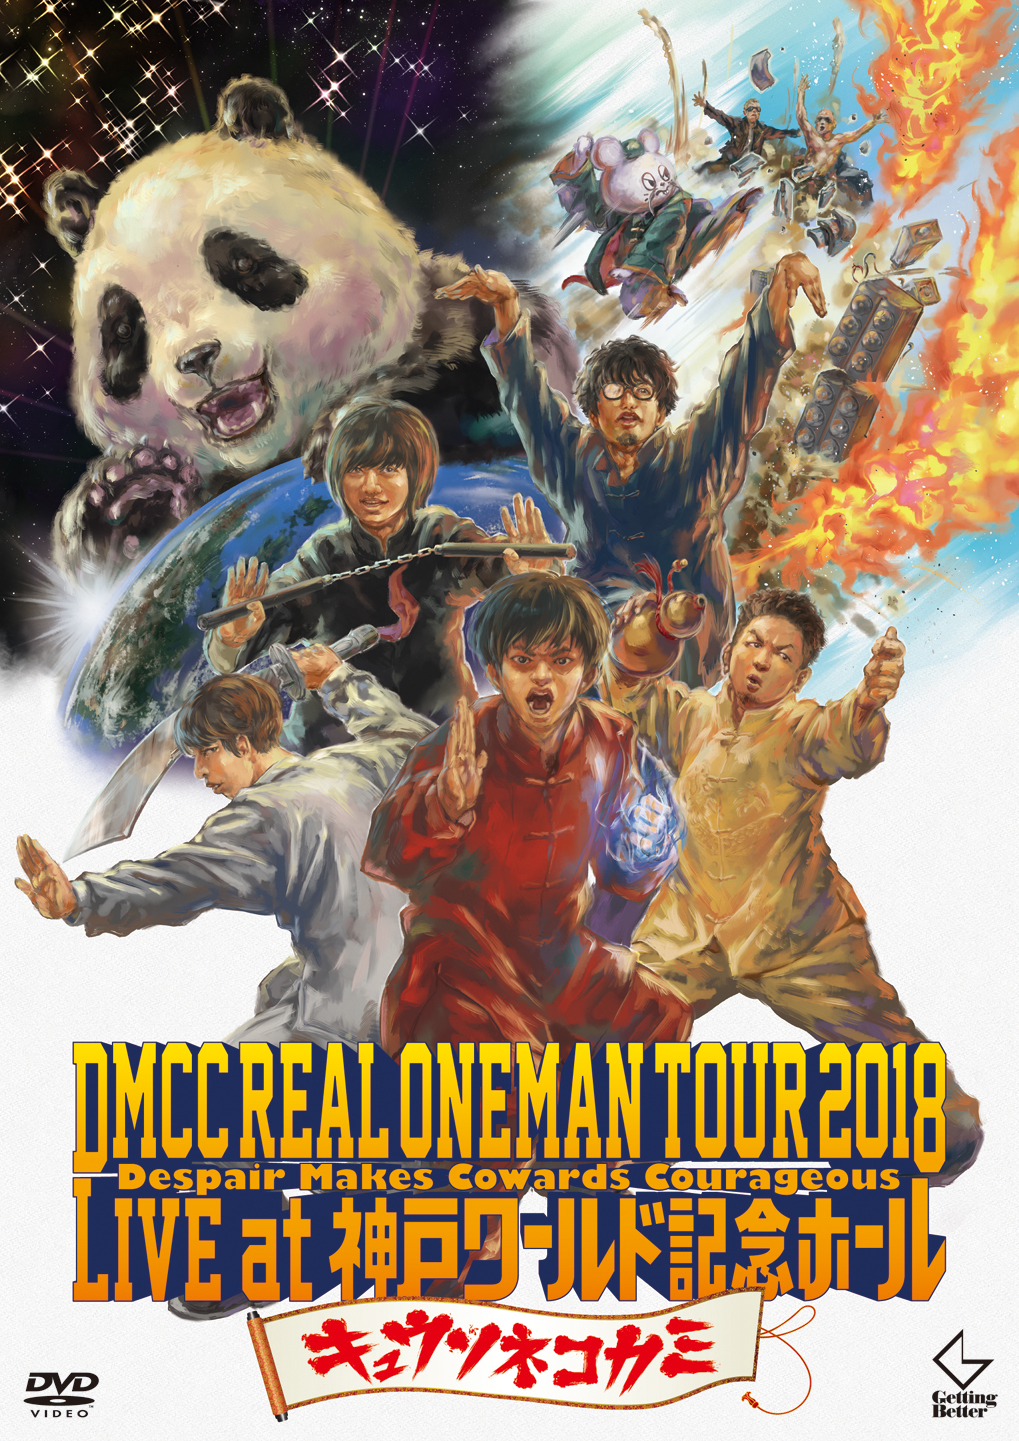 DMCC REAL ONEMAN TOUR 2018 -Despair Makes Cowards Courageous Live at 神戸ワールド記念ホール